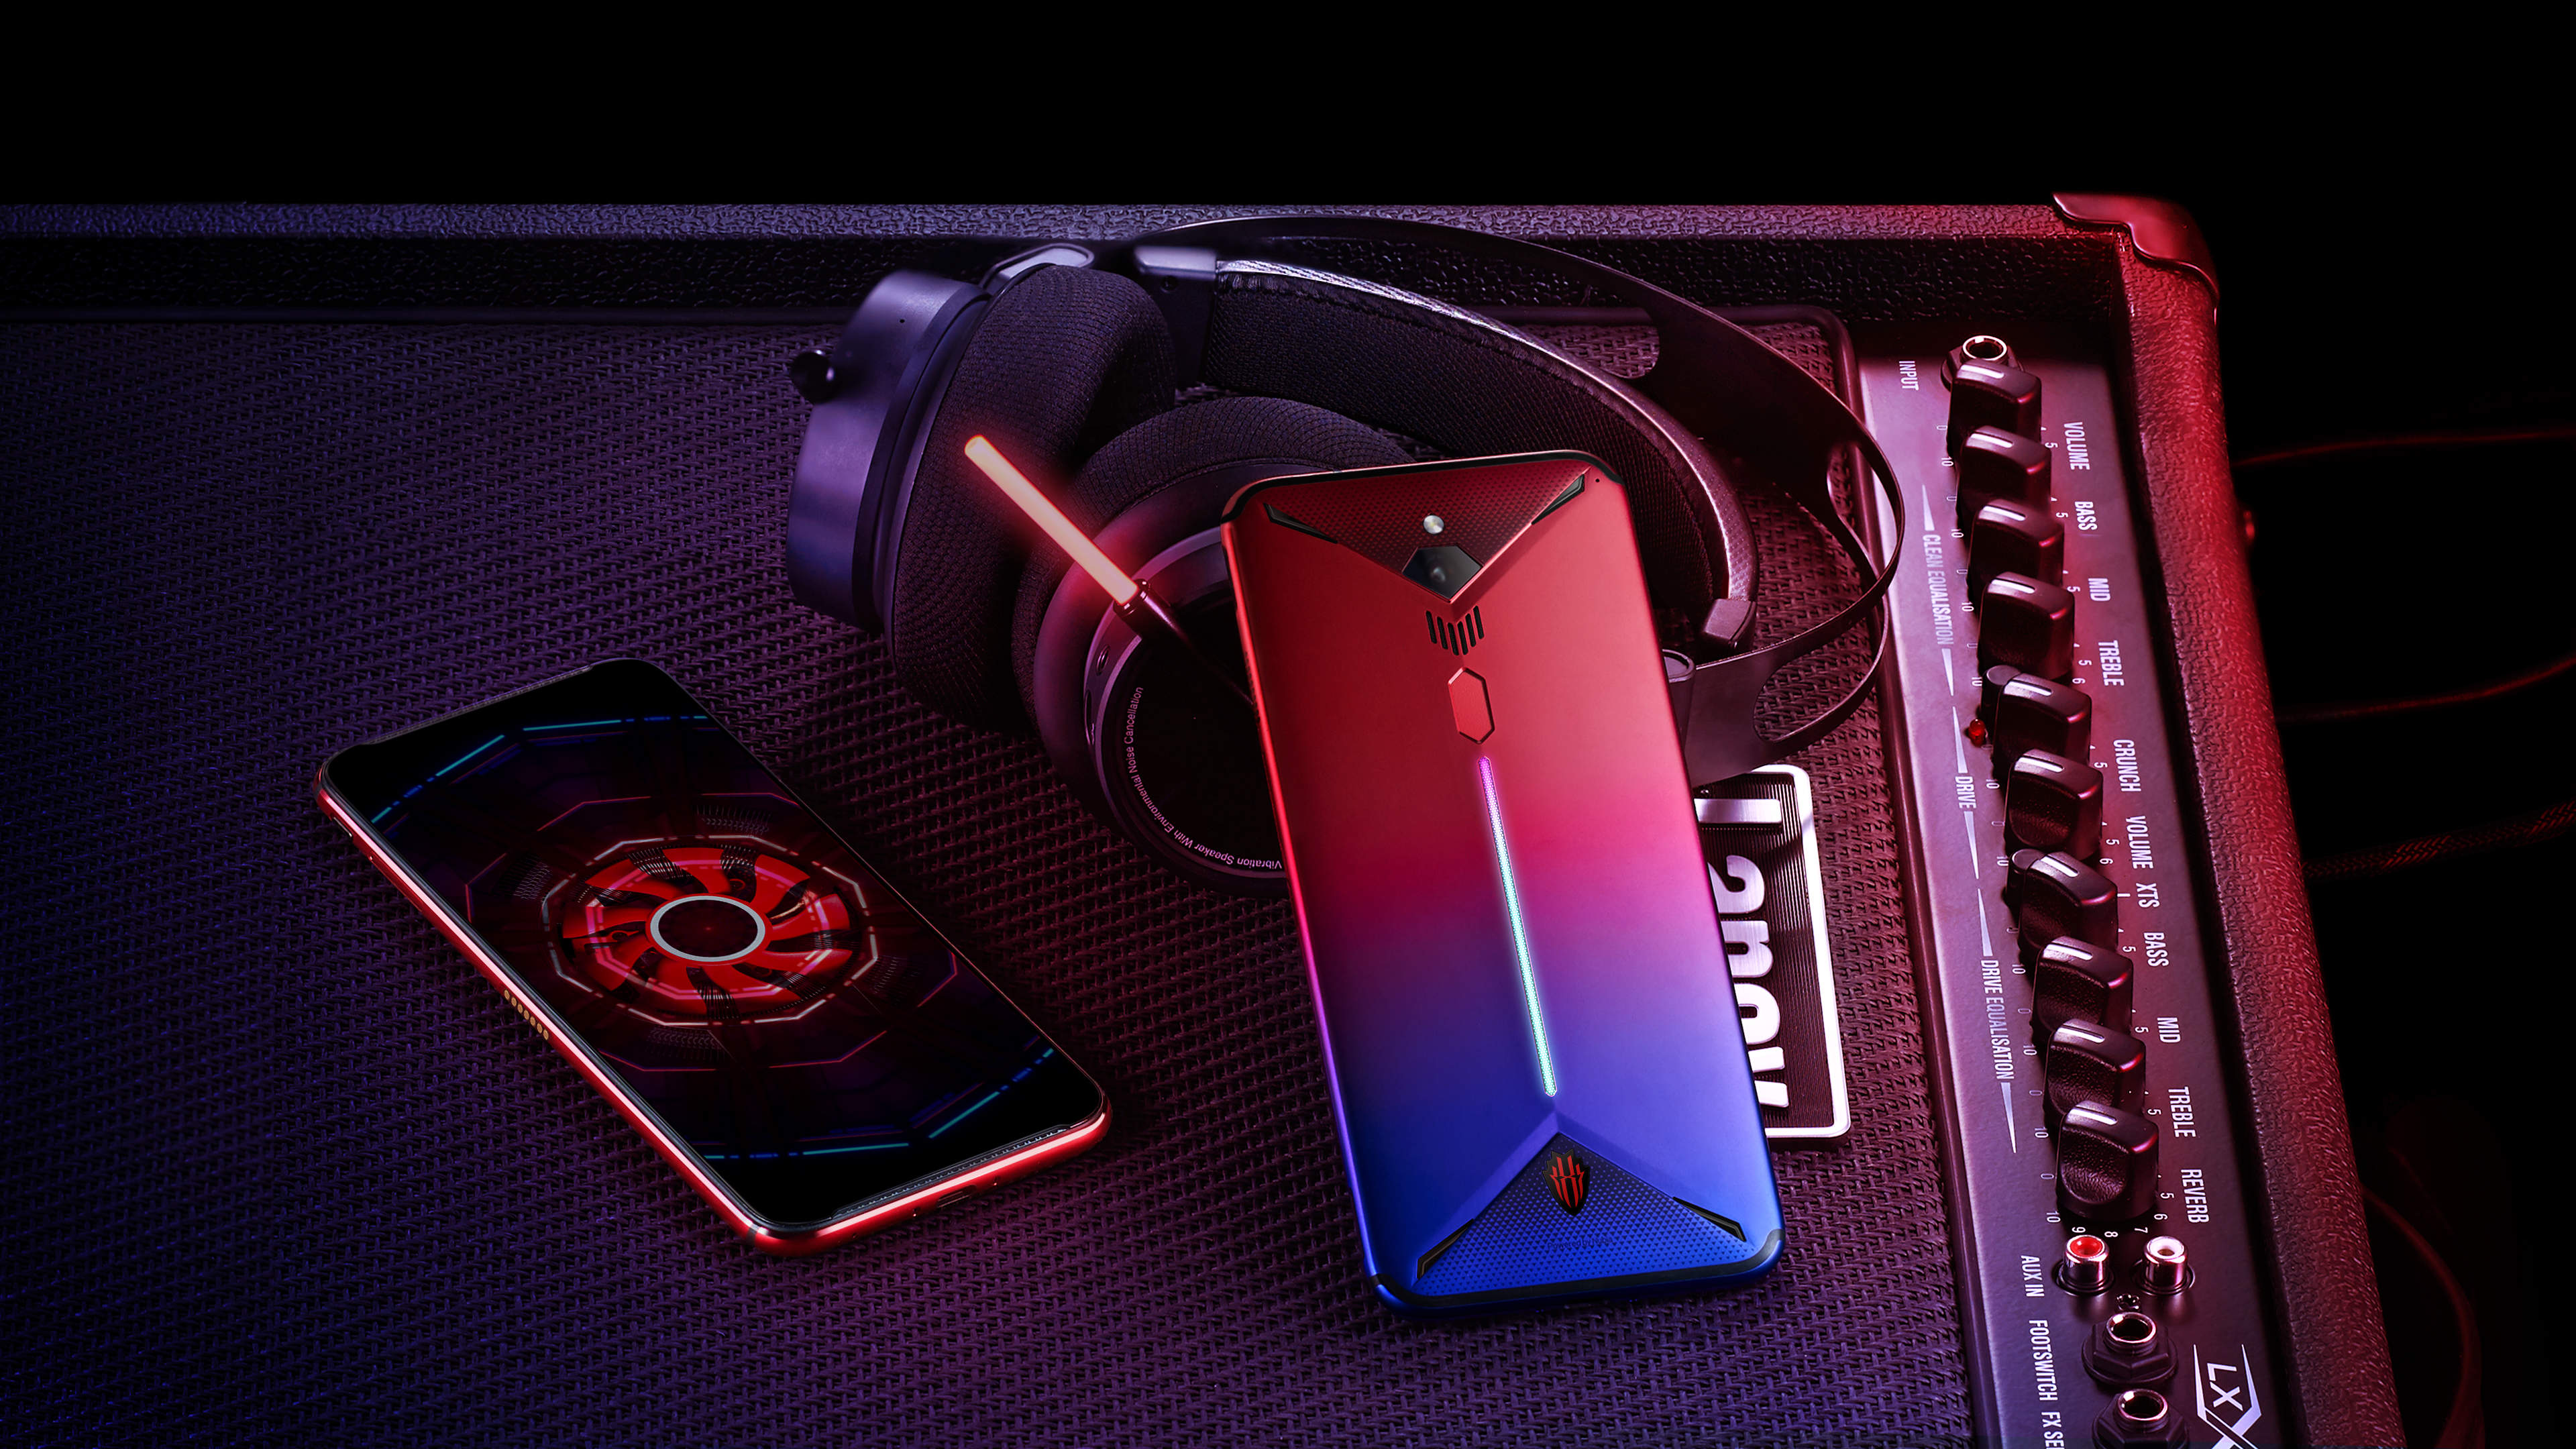 Nubia Red Magic 3 Gaming Phone Launched With Built-In Cooling Fan